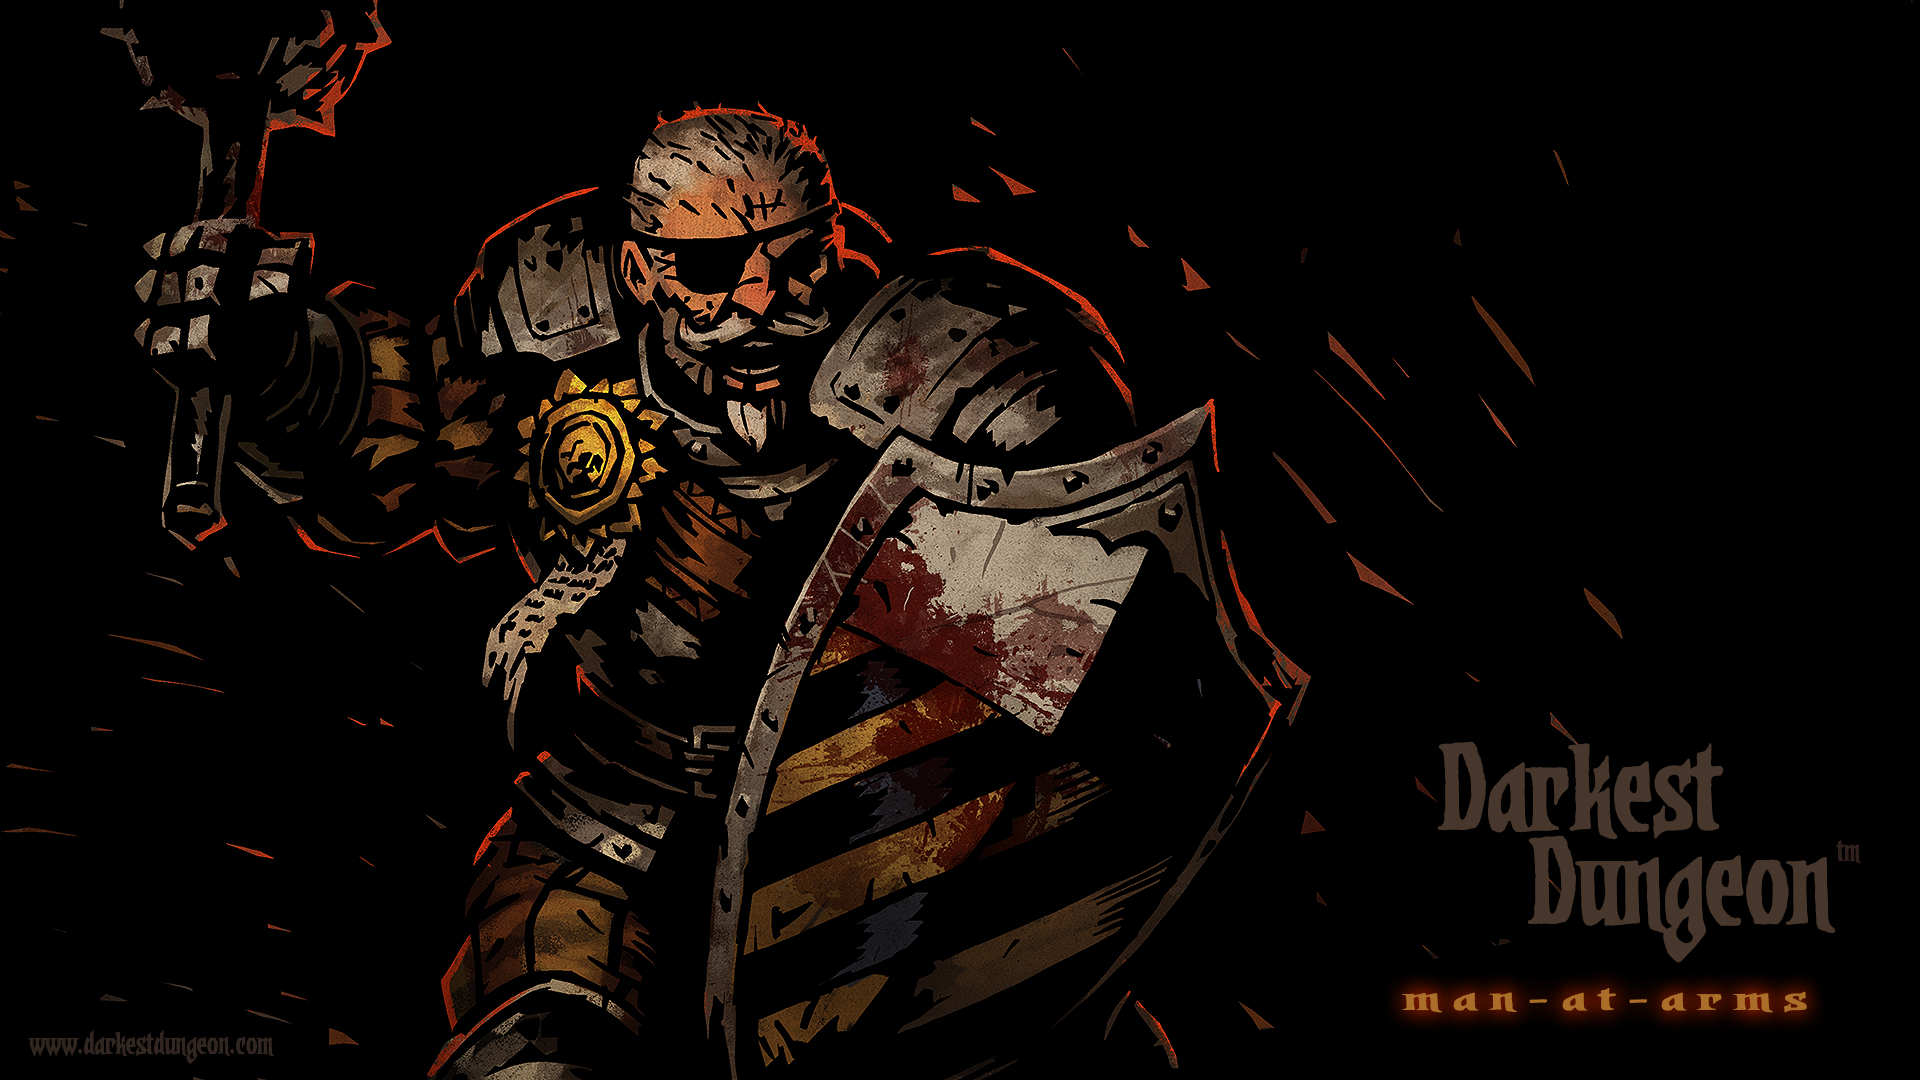 Darkest Dungeon #52